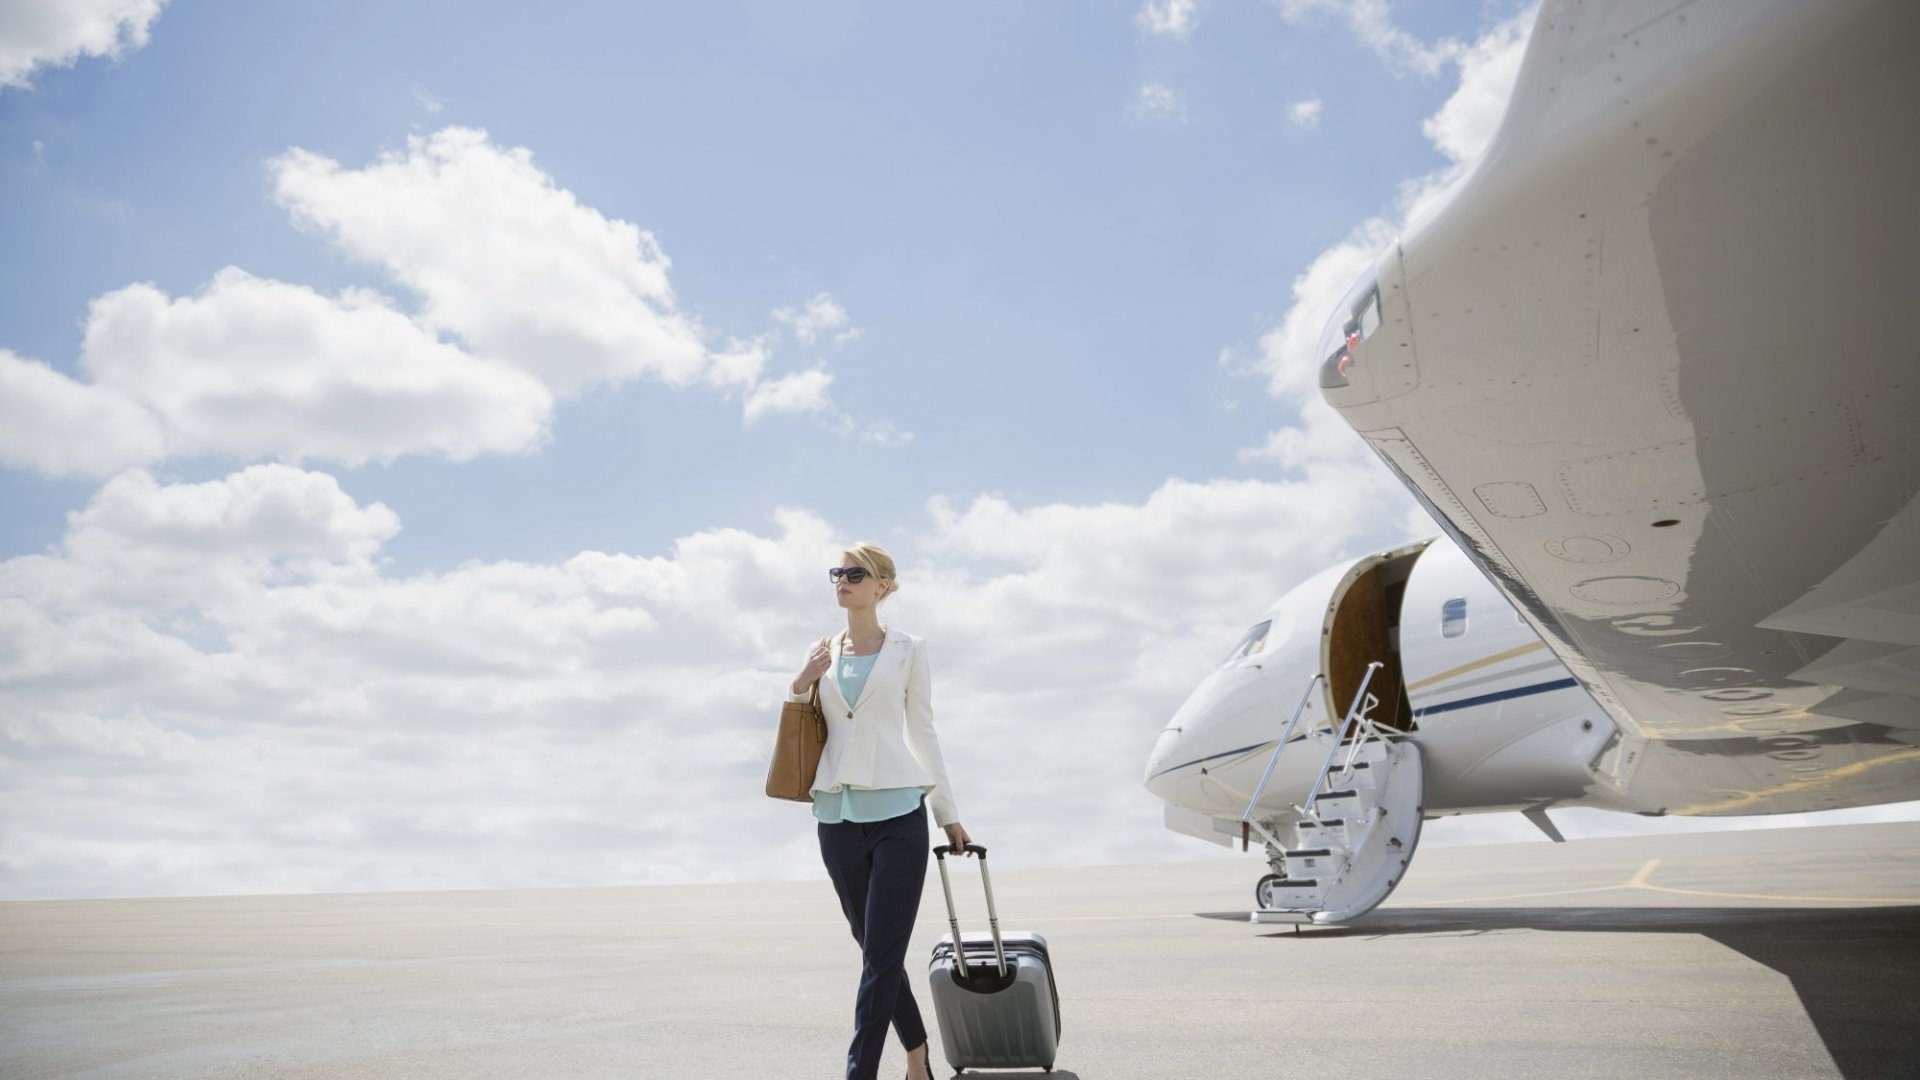 Flying Private Doesn't Have to Break the Bank